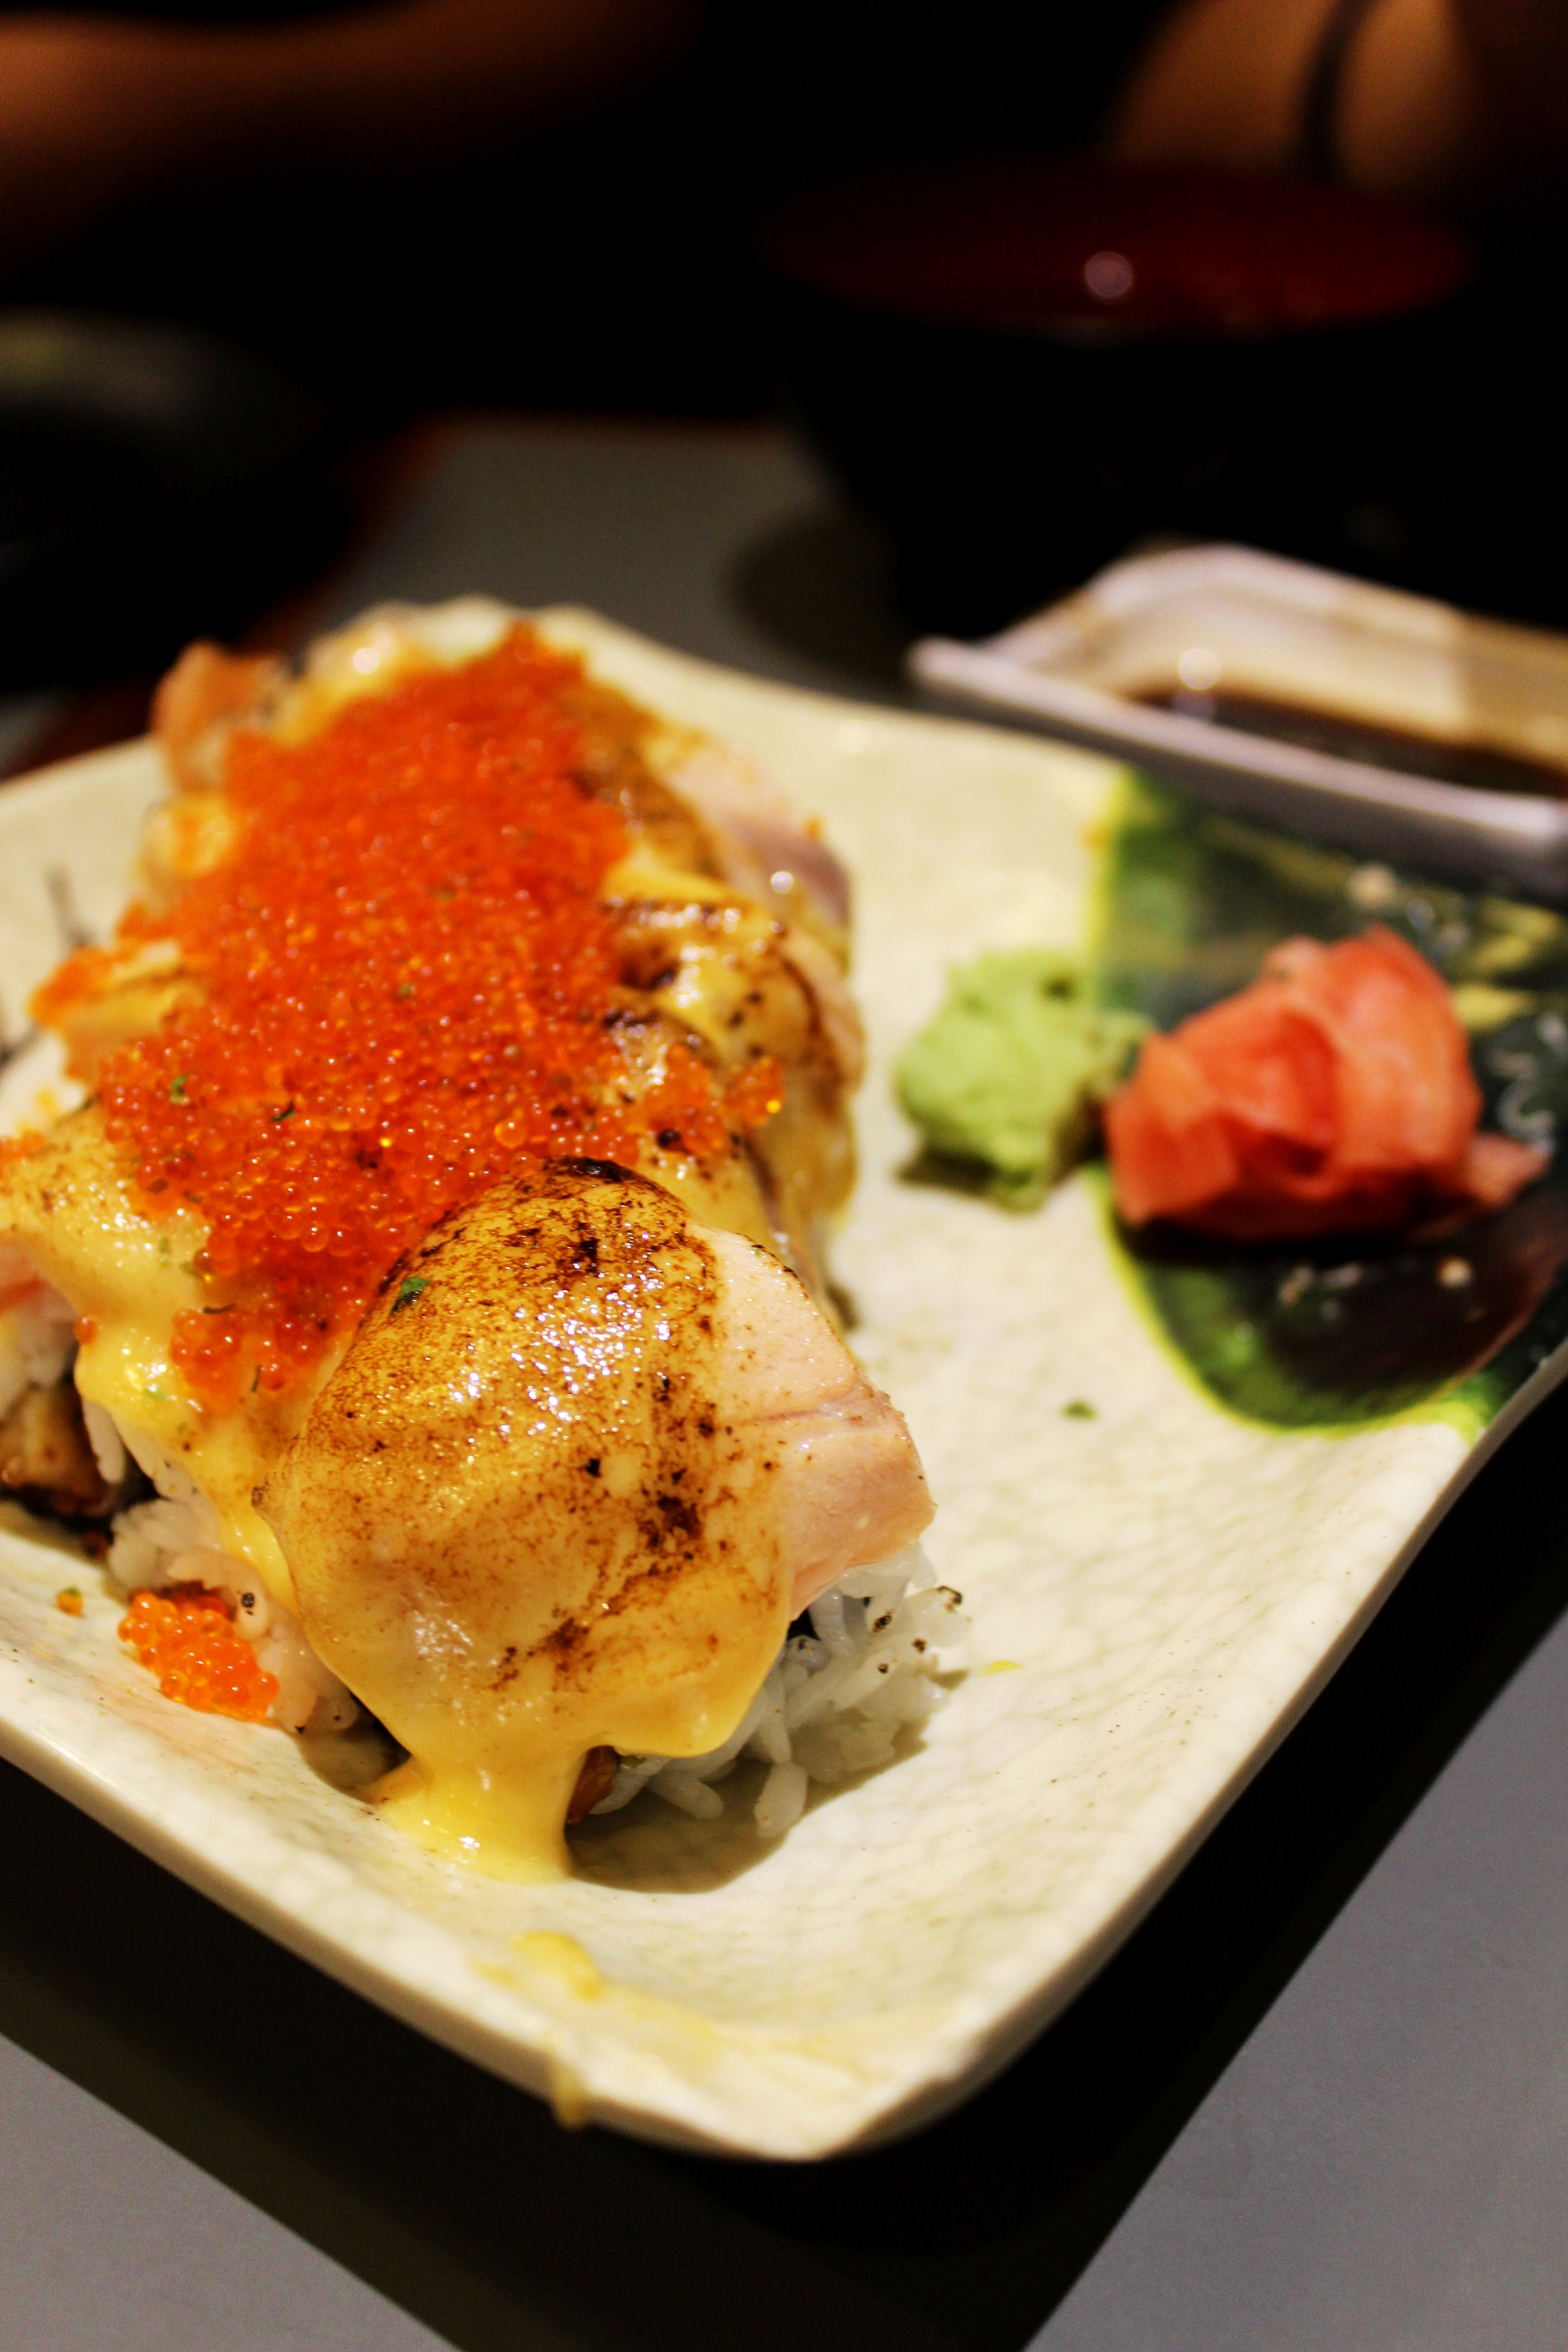 Koh Sushi And Grill Koh Grill Sushi Bar is a